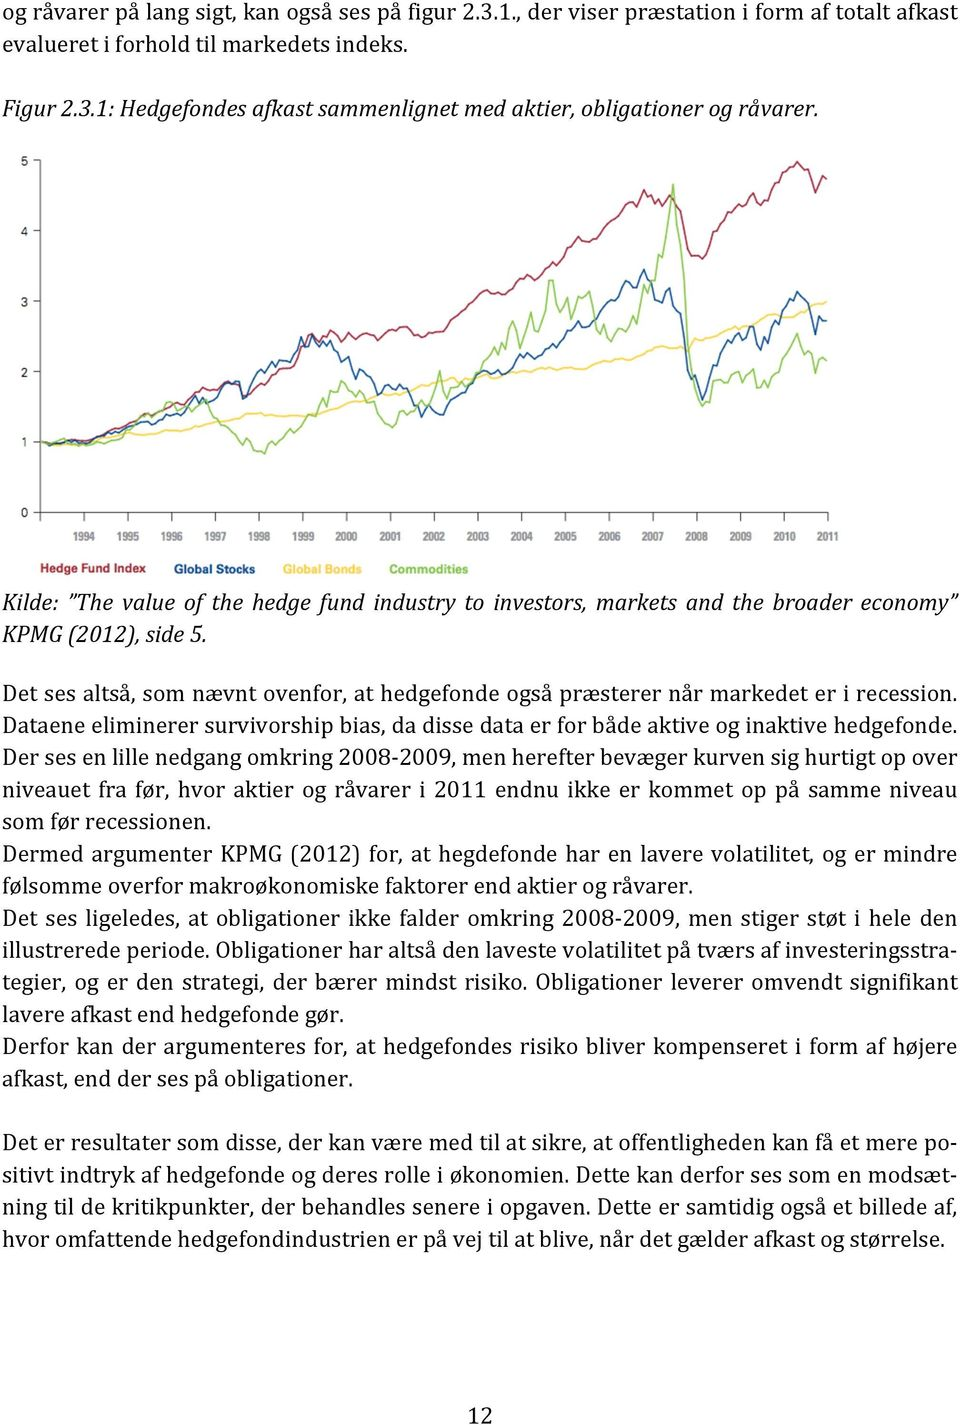 Det ses altså, som nævnt ovenfor, at hedgefonde også præsterer når markedet er i recession. Dataene eliminerer survivorship bias, da disse data er for både aktive og inaktive hedgefonde.